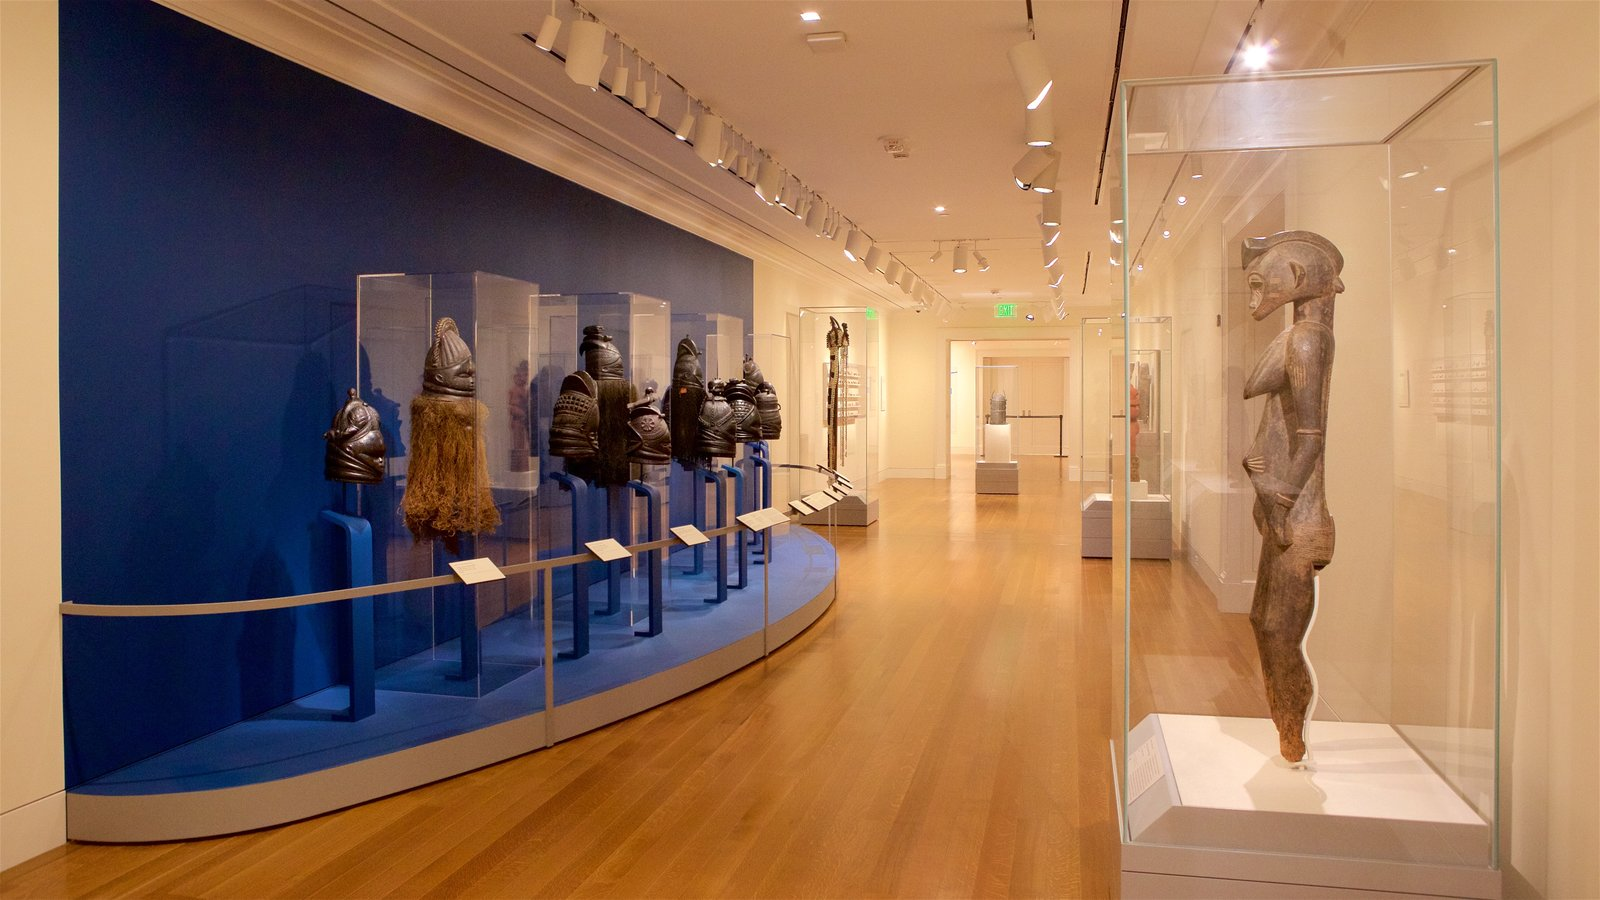 Baltimore Museum of Art featuring interior views and art